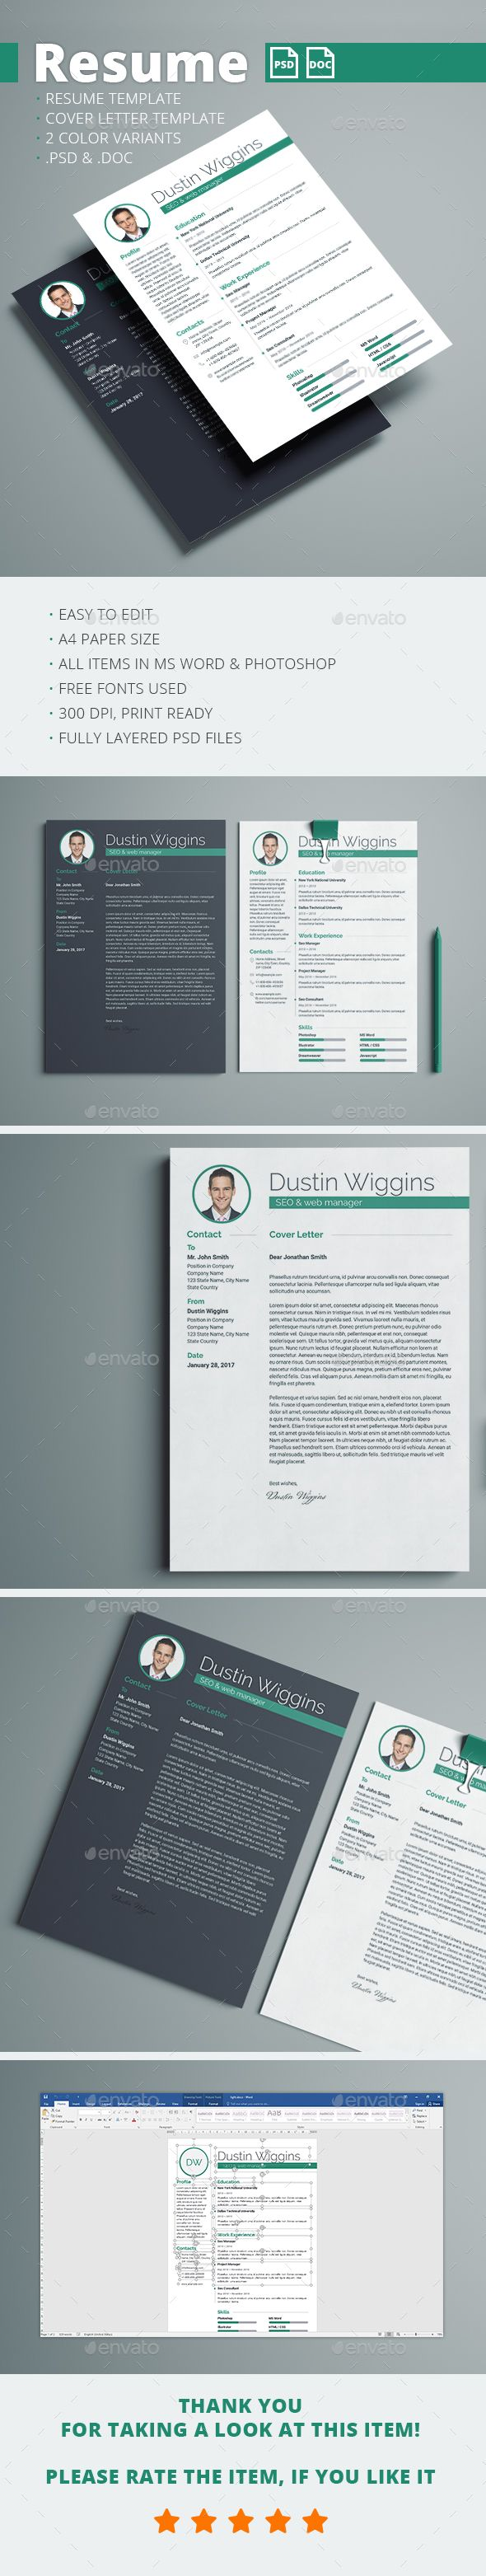 Cv writing courses london example good resume template teaching cv template job description